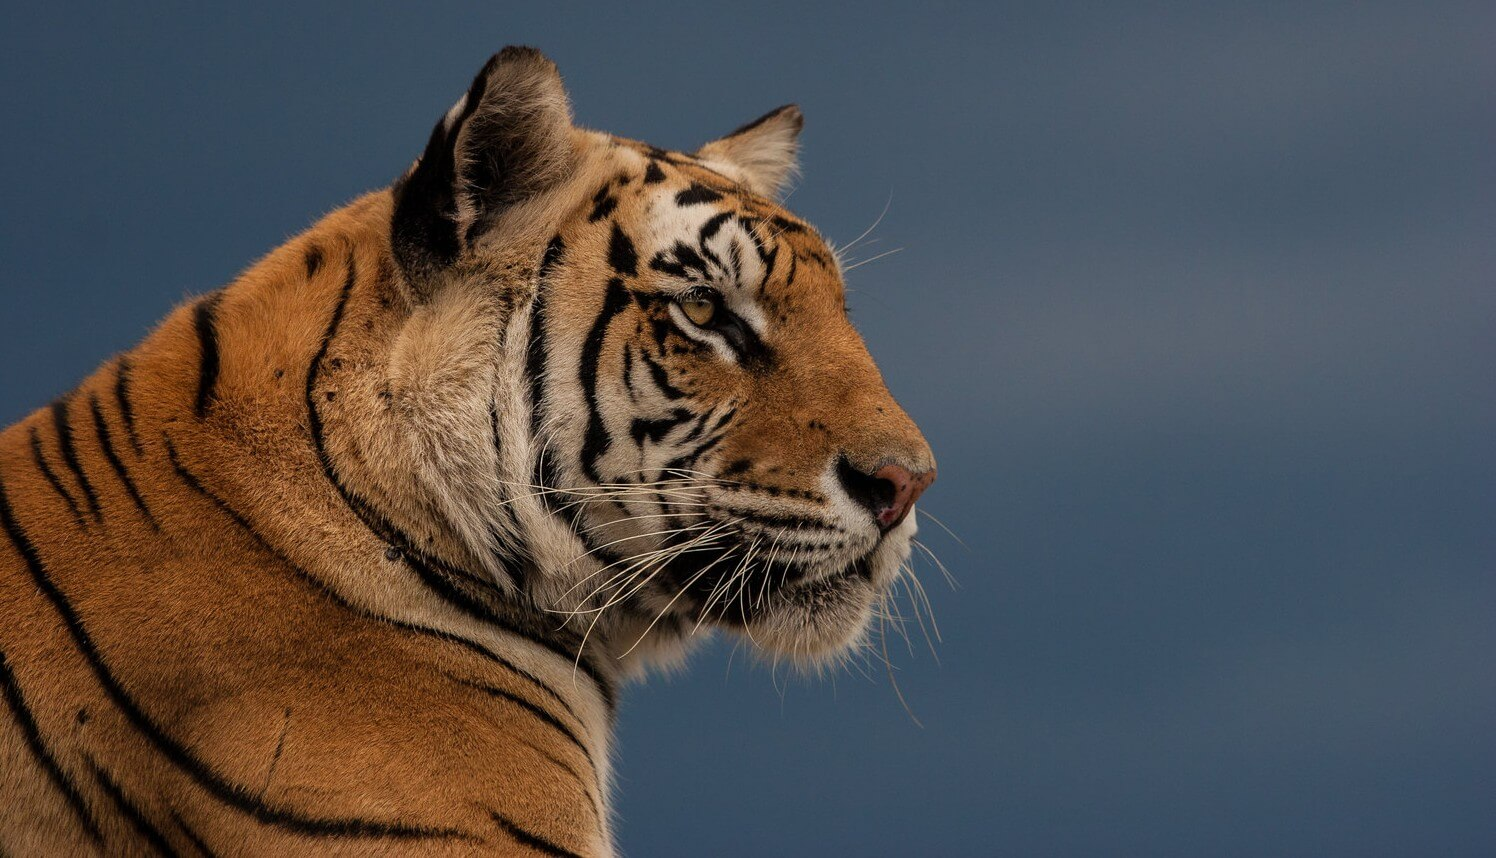 India-Tigress-by-James-Kydd-e1439449238516